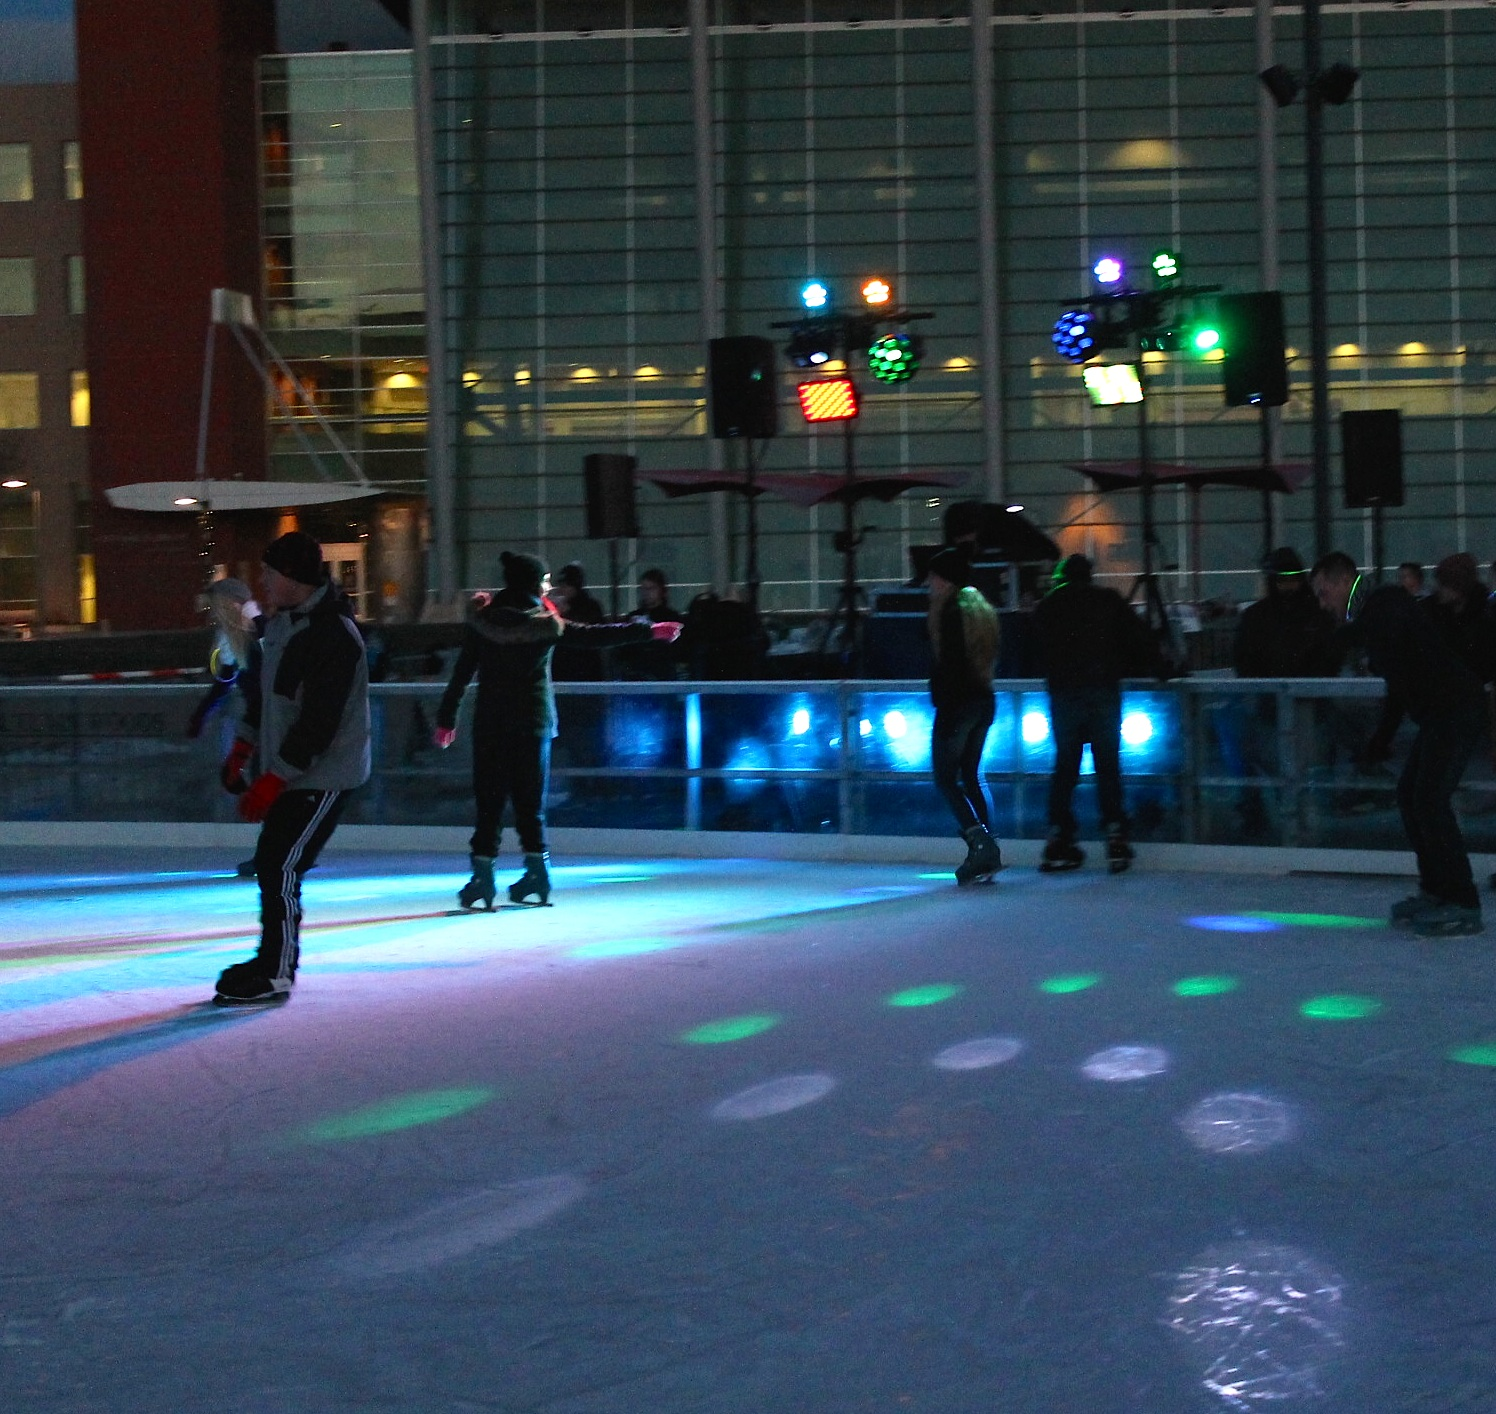 hight resolution of instagram follower eddieuuu071 captures the holiday hockey rink lights warren skaters glide to the glow